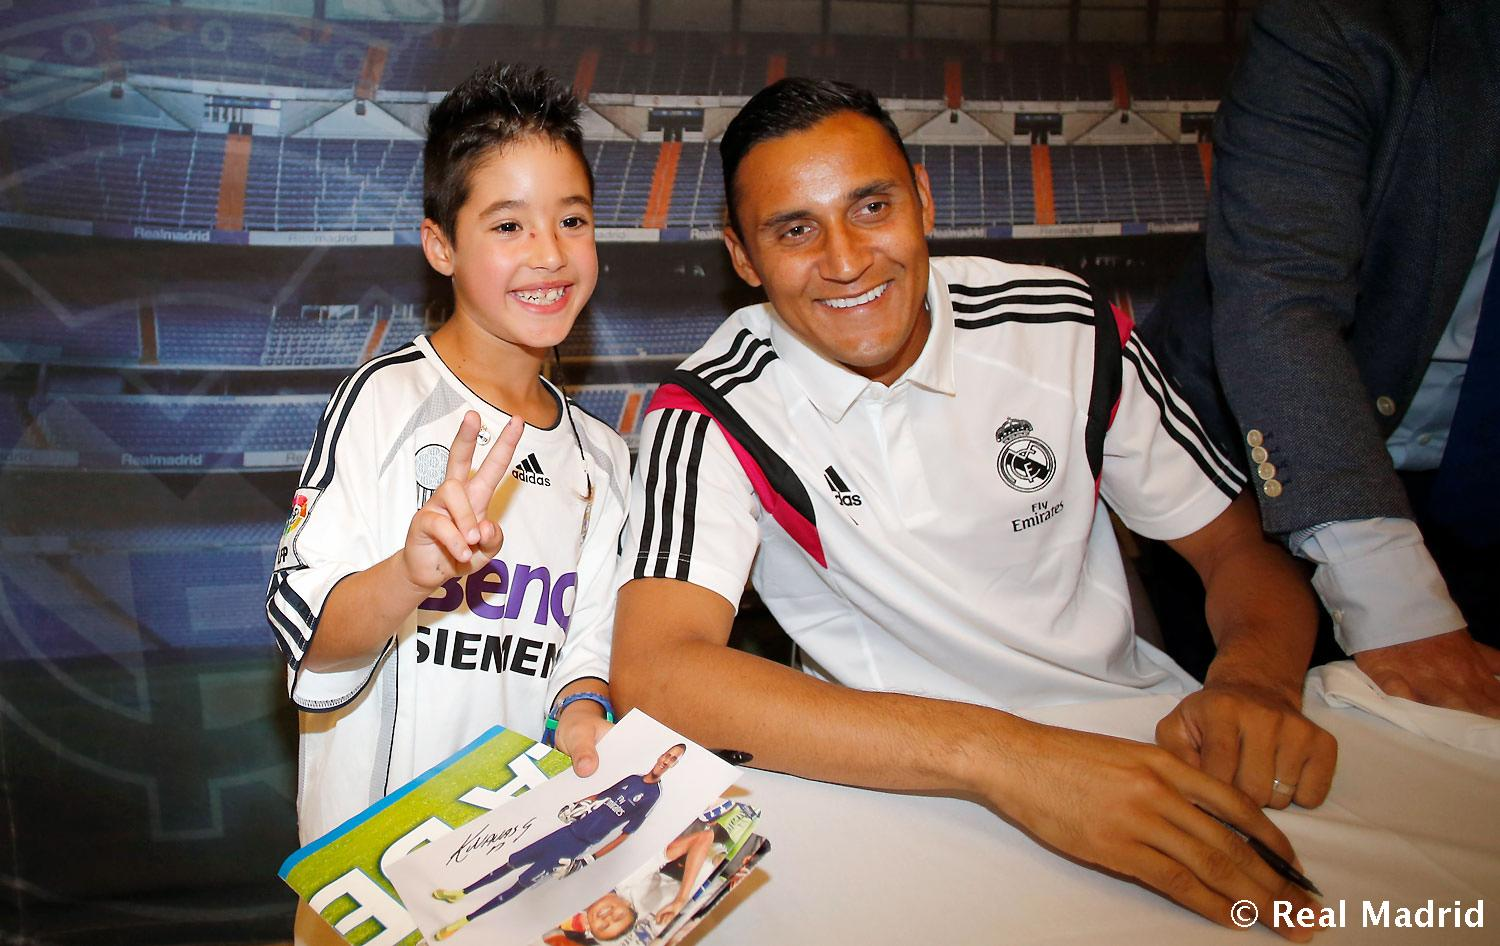 Real Madrid - Firmas de Chicharito y Keylor Navas - 19-09-2014